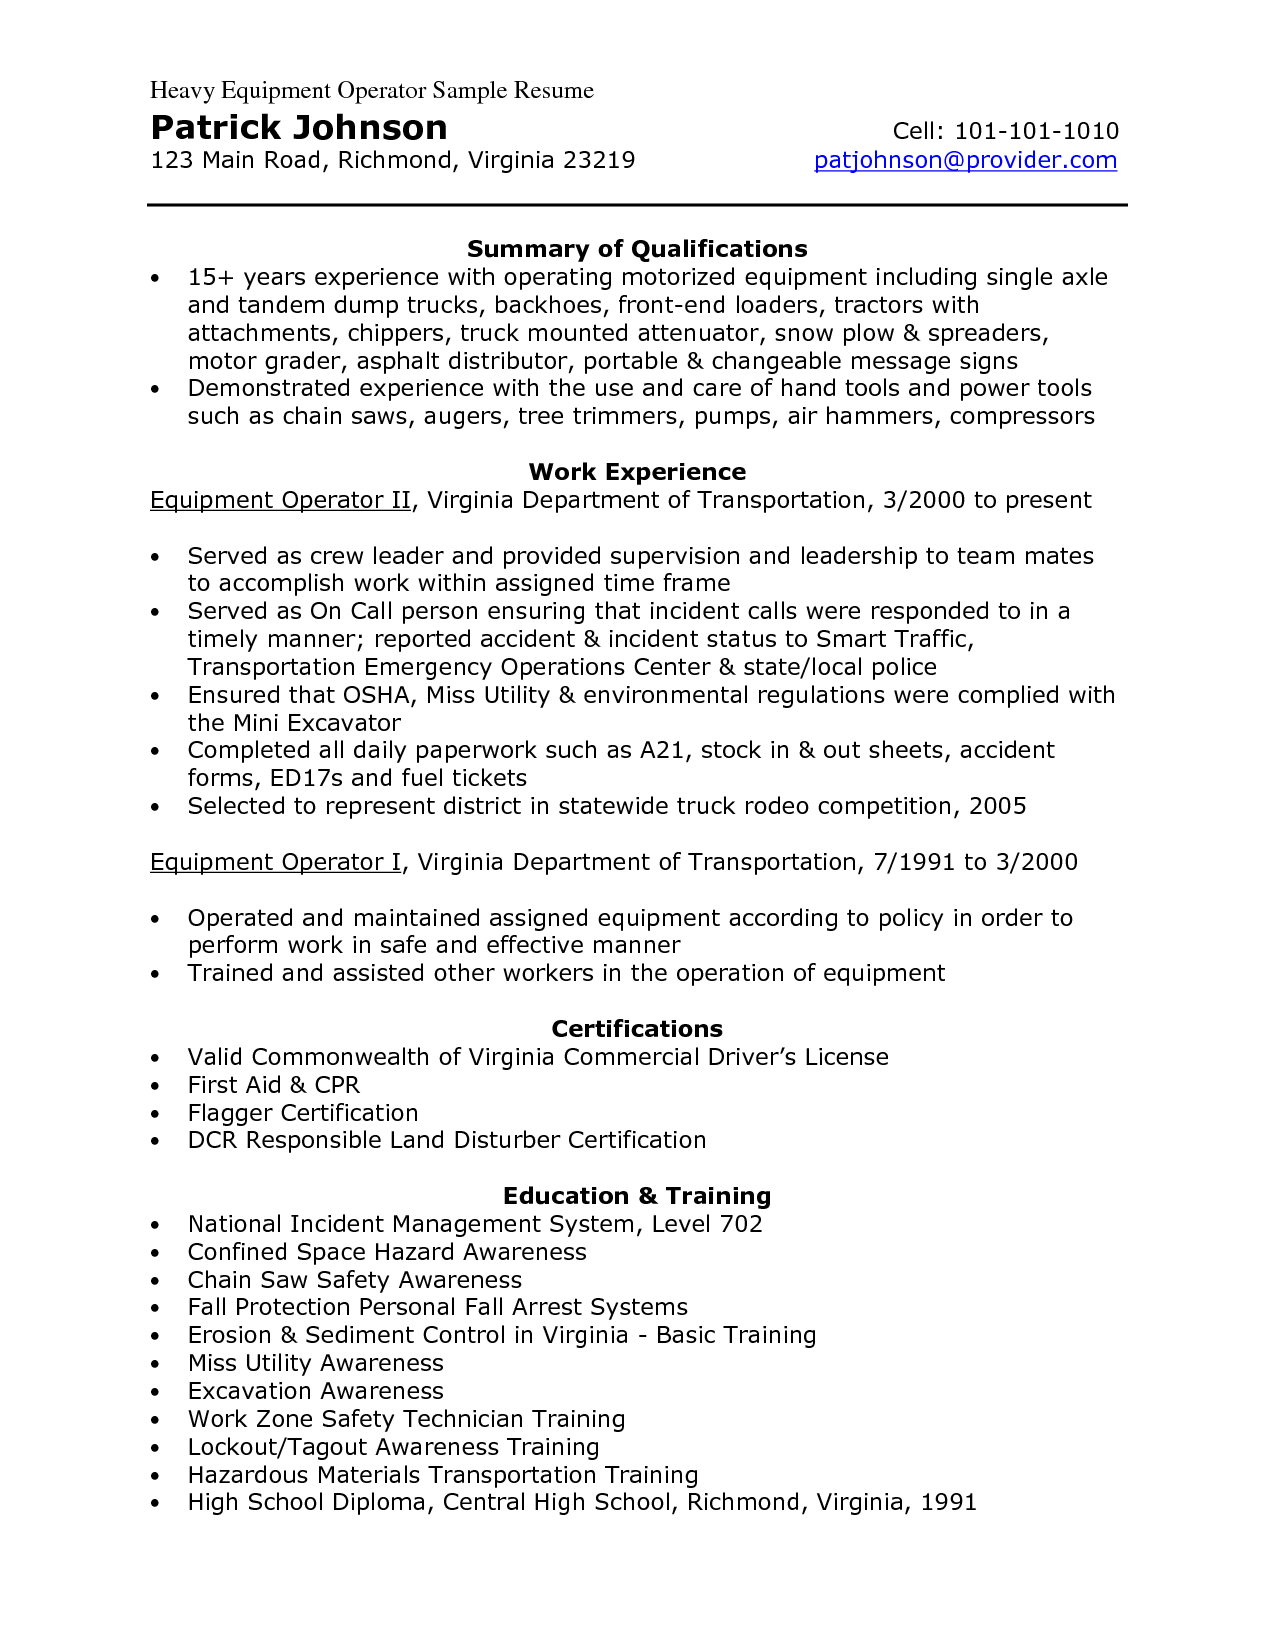 Chemical Operator Resume Resumes For Excavators Heavy Equipment Operator Sample Resume